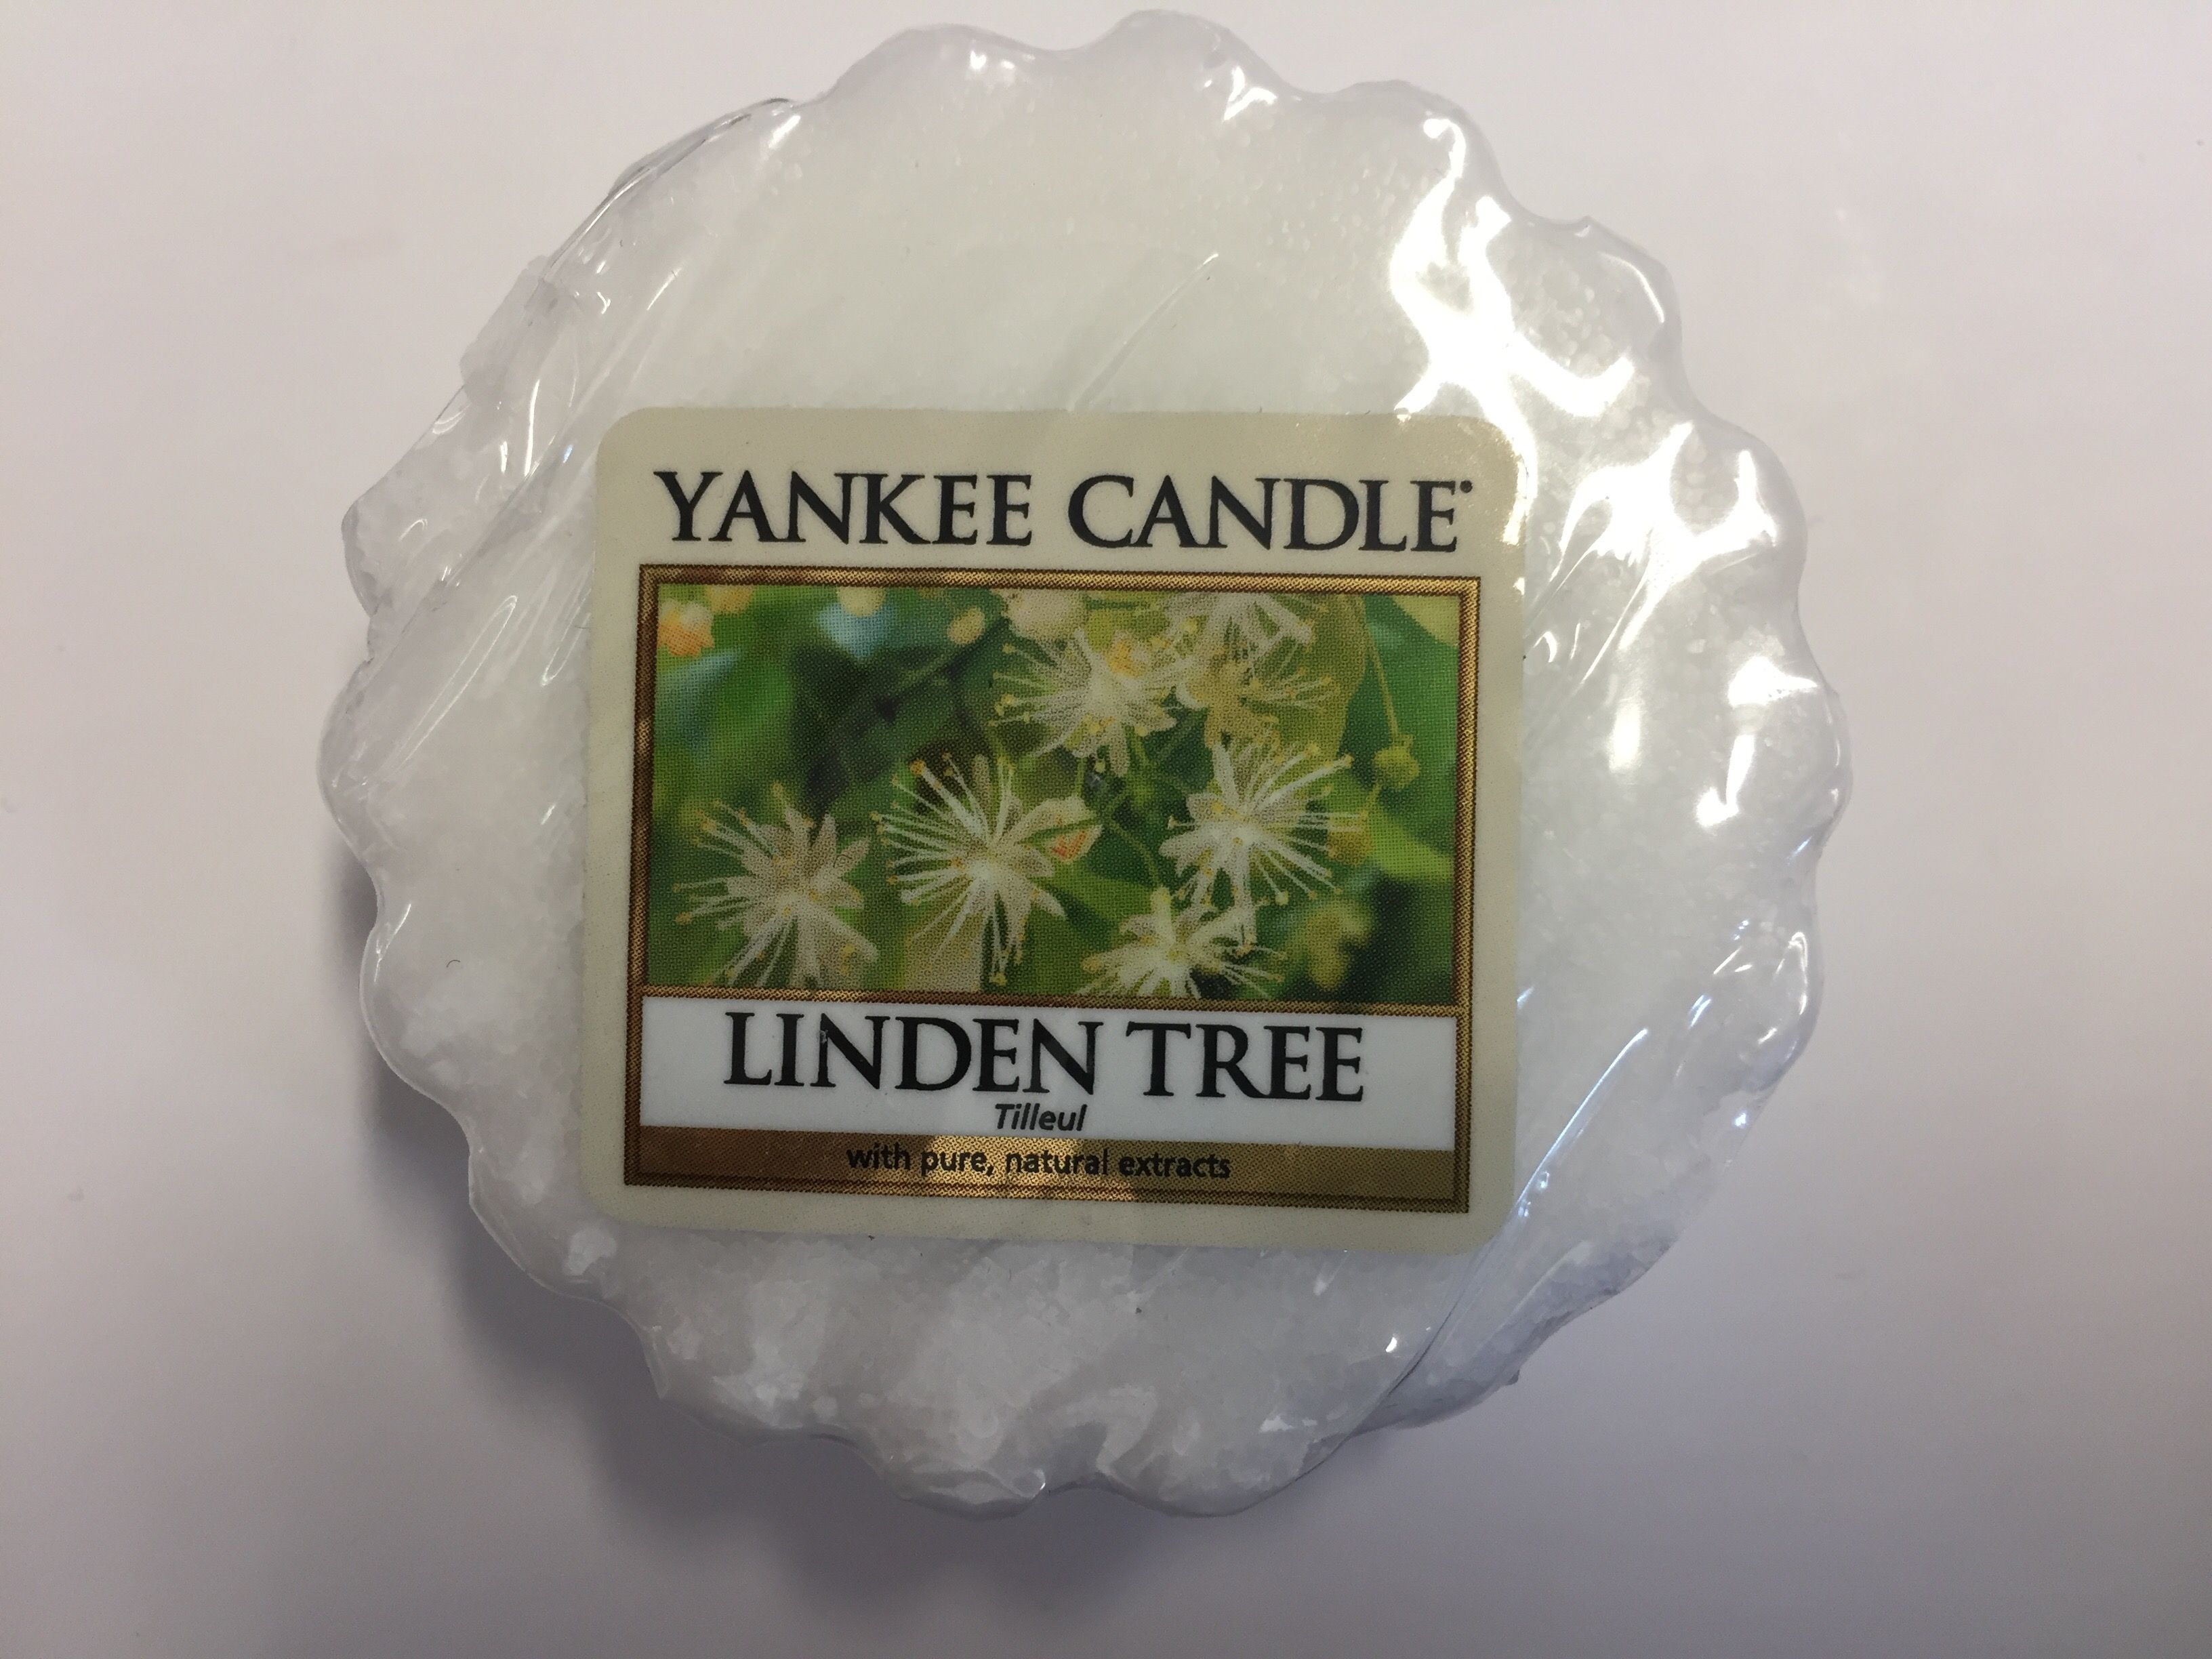 Yankee candle linden tree tart candles pinterest